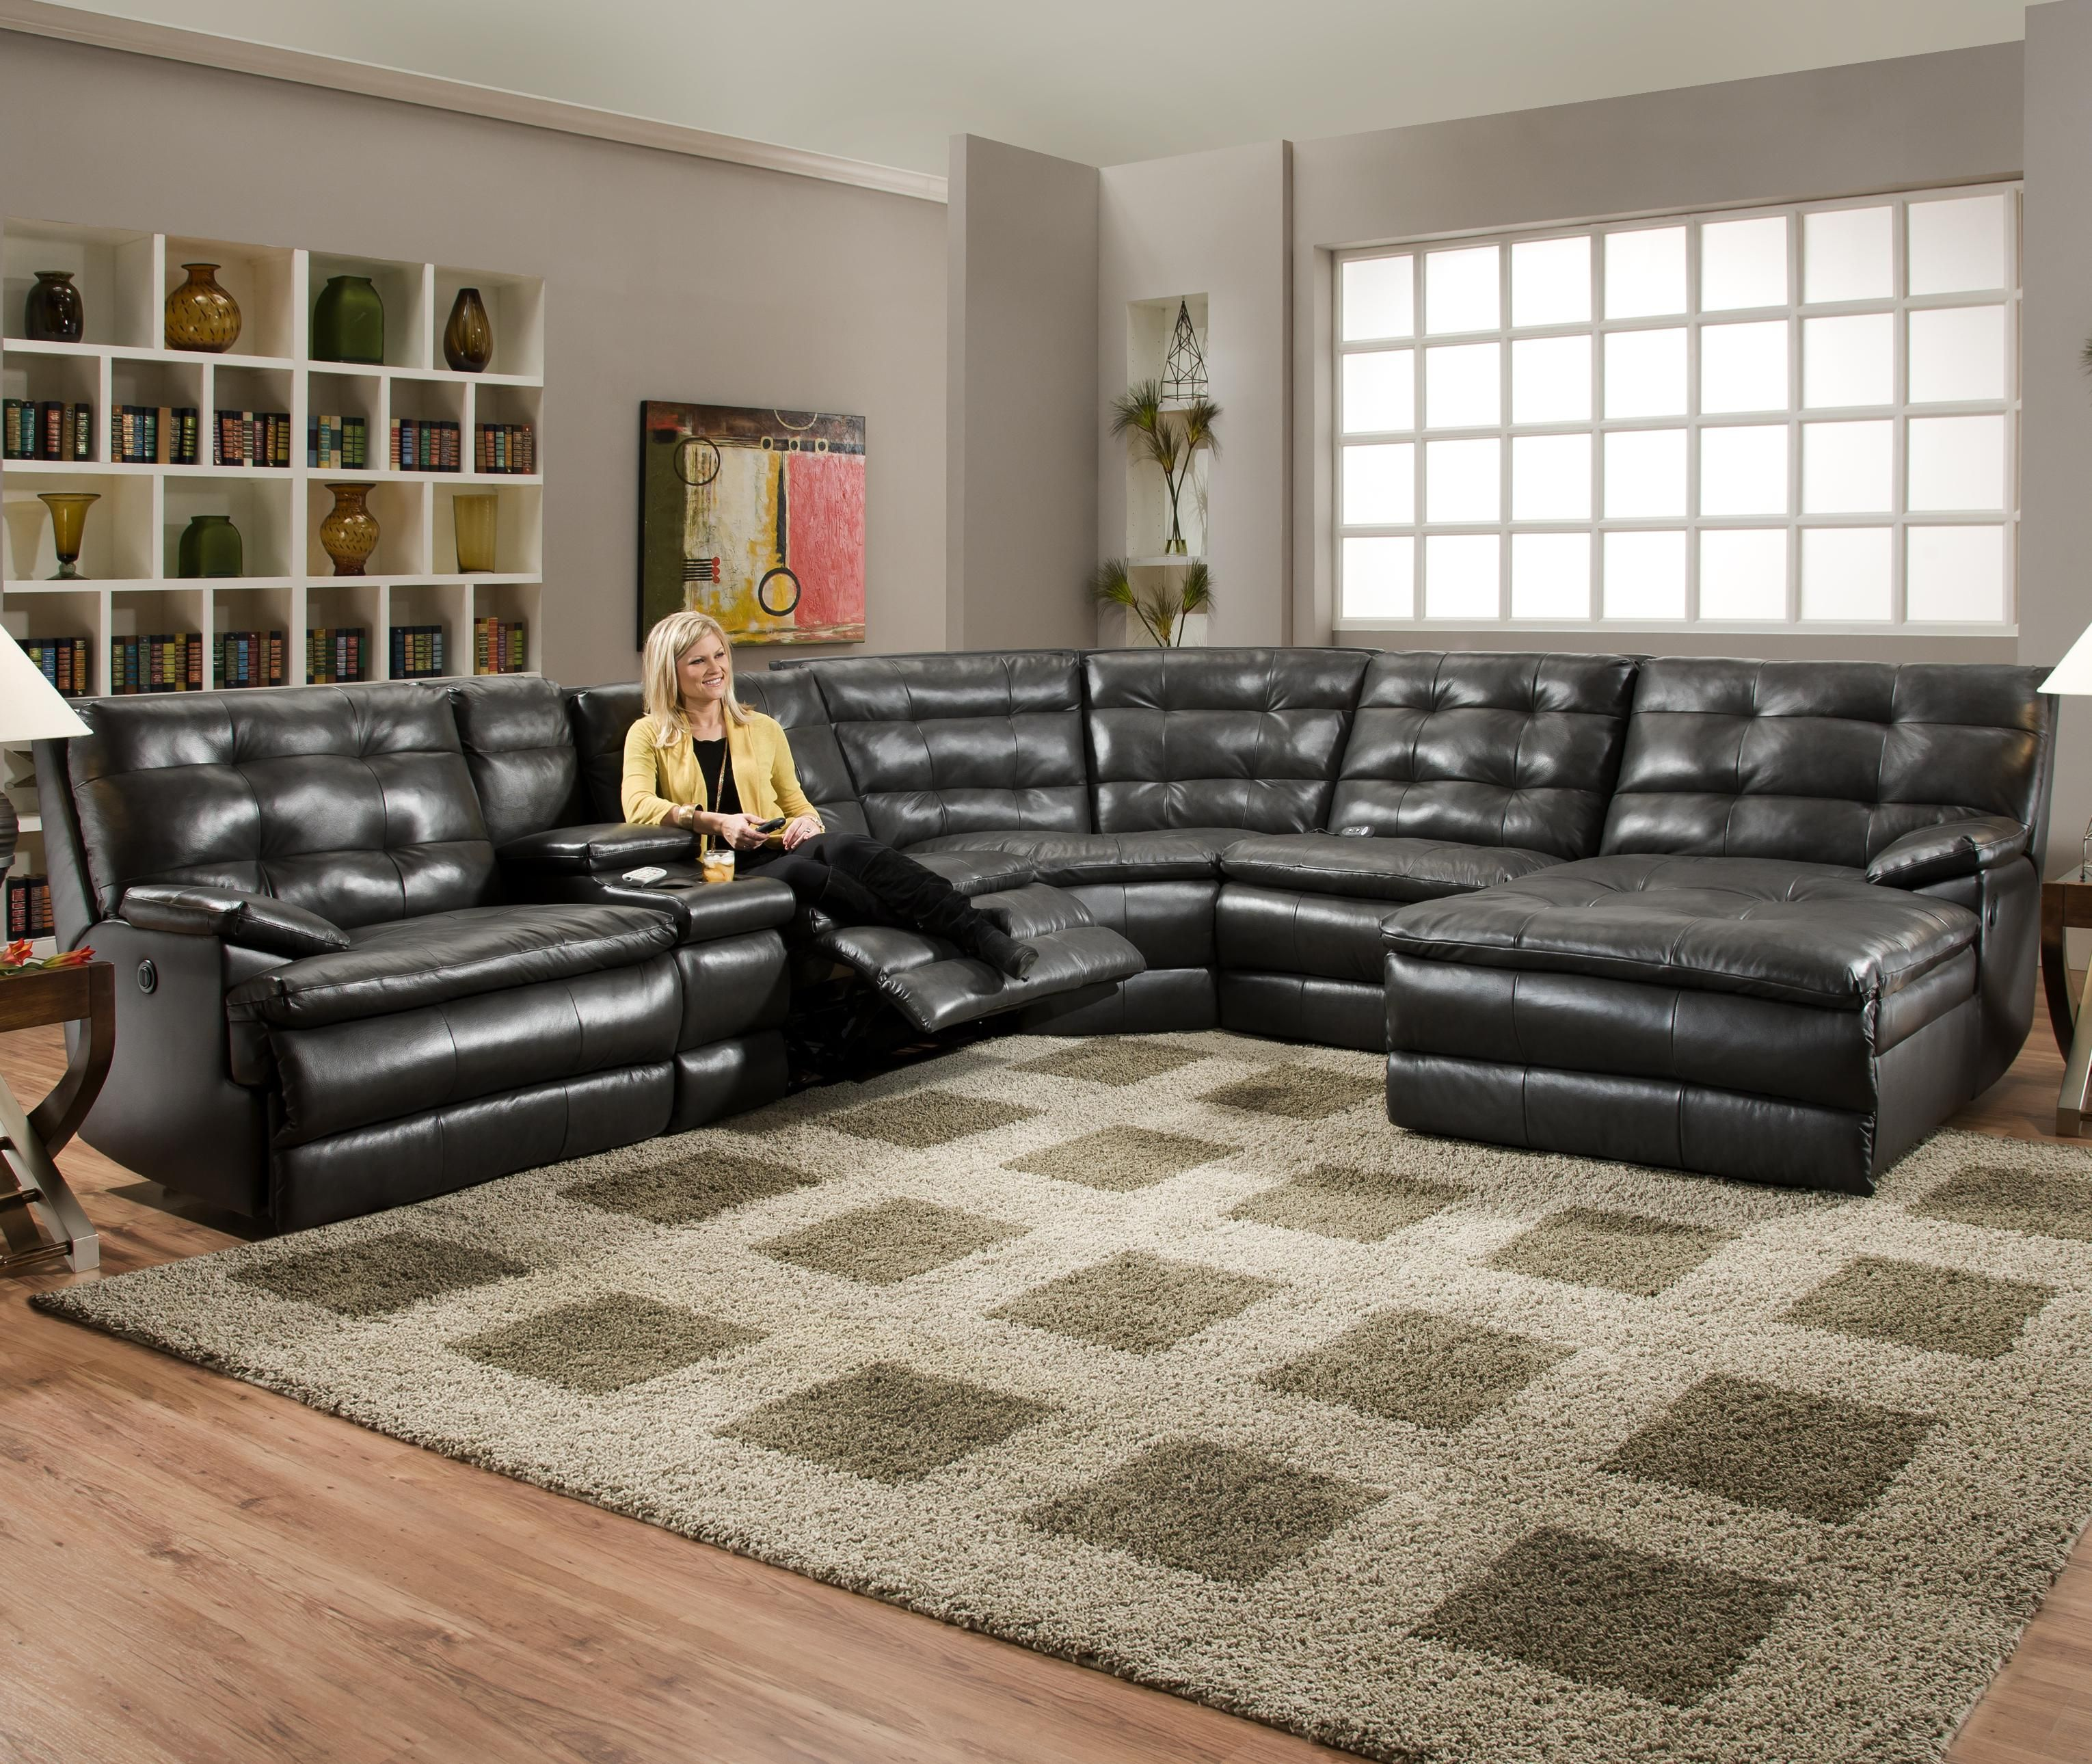 Luxurious Tufted Leather Sectional Sofa In Classy Black Color With Recliner  And Coffee Table Also Arm Rest And Chaise